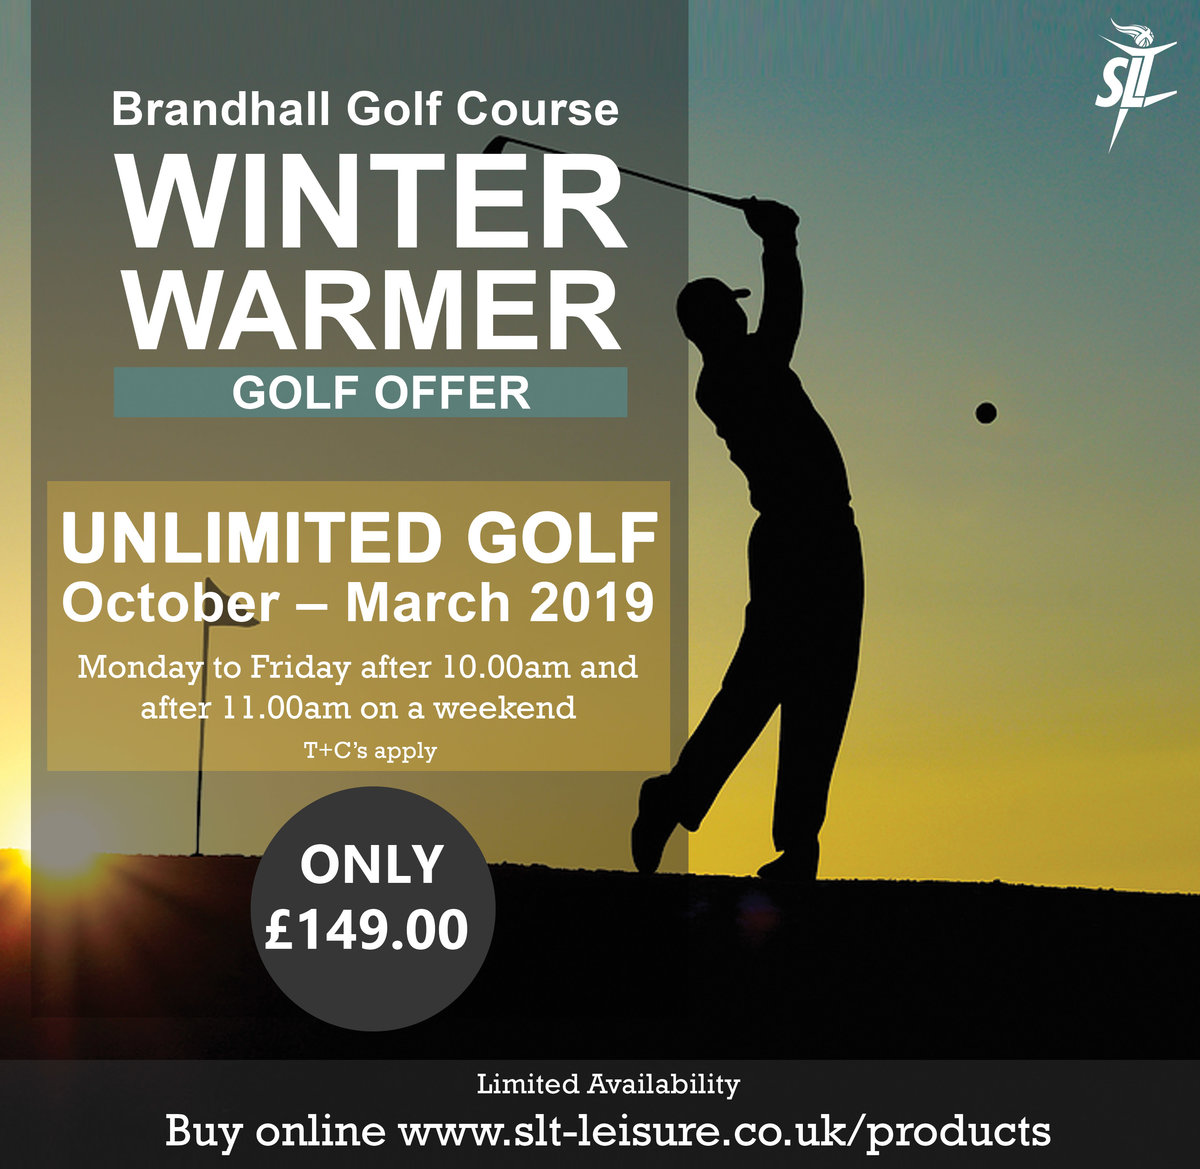 Winter Warmer Golf Offer